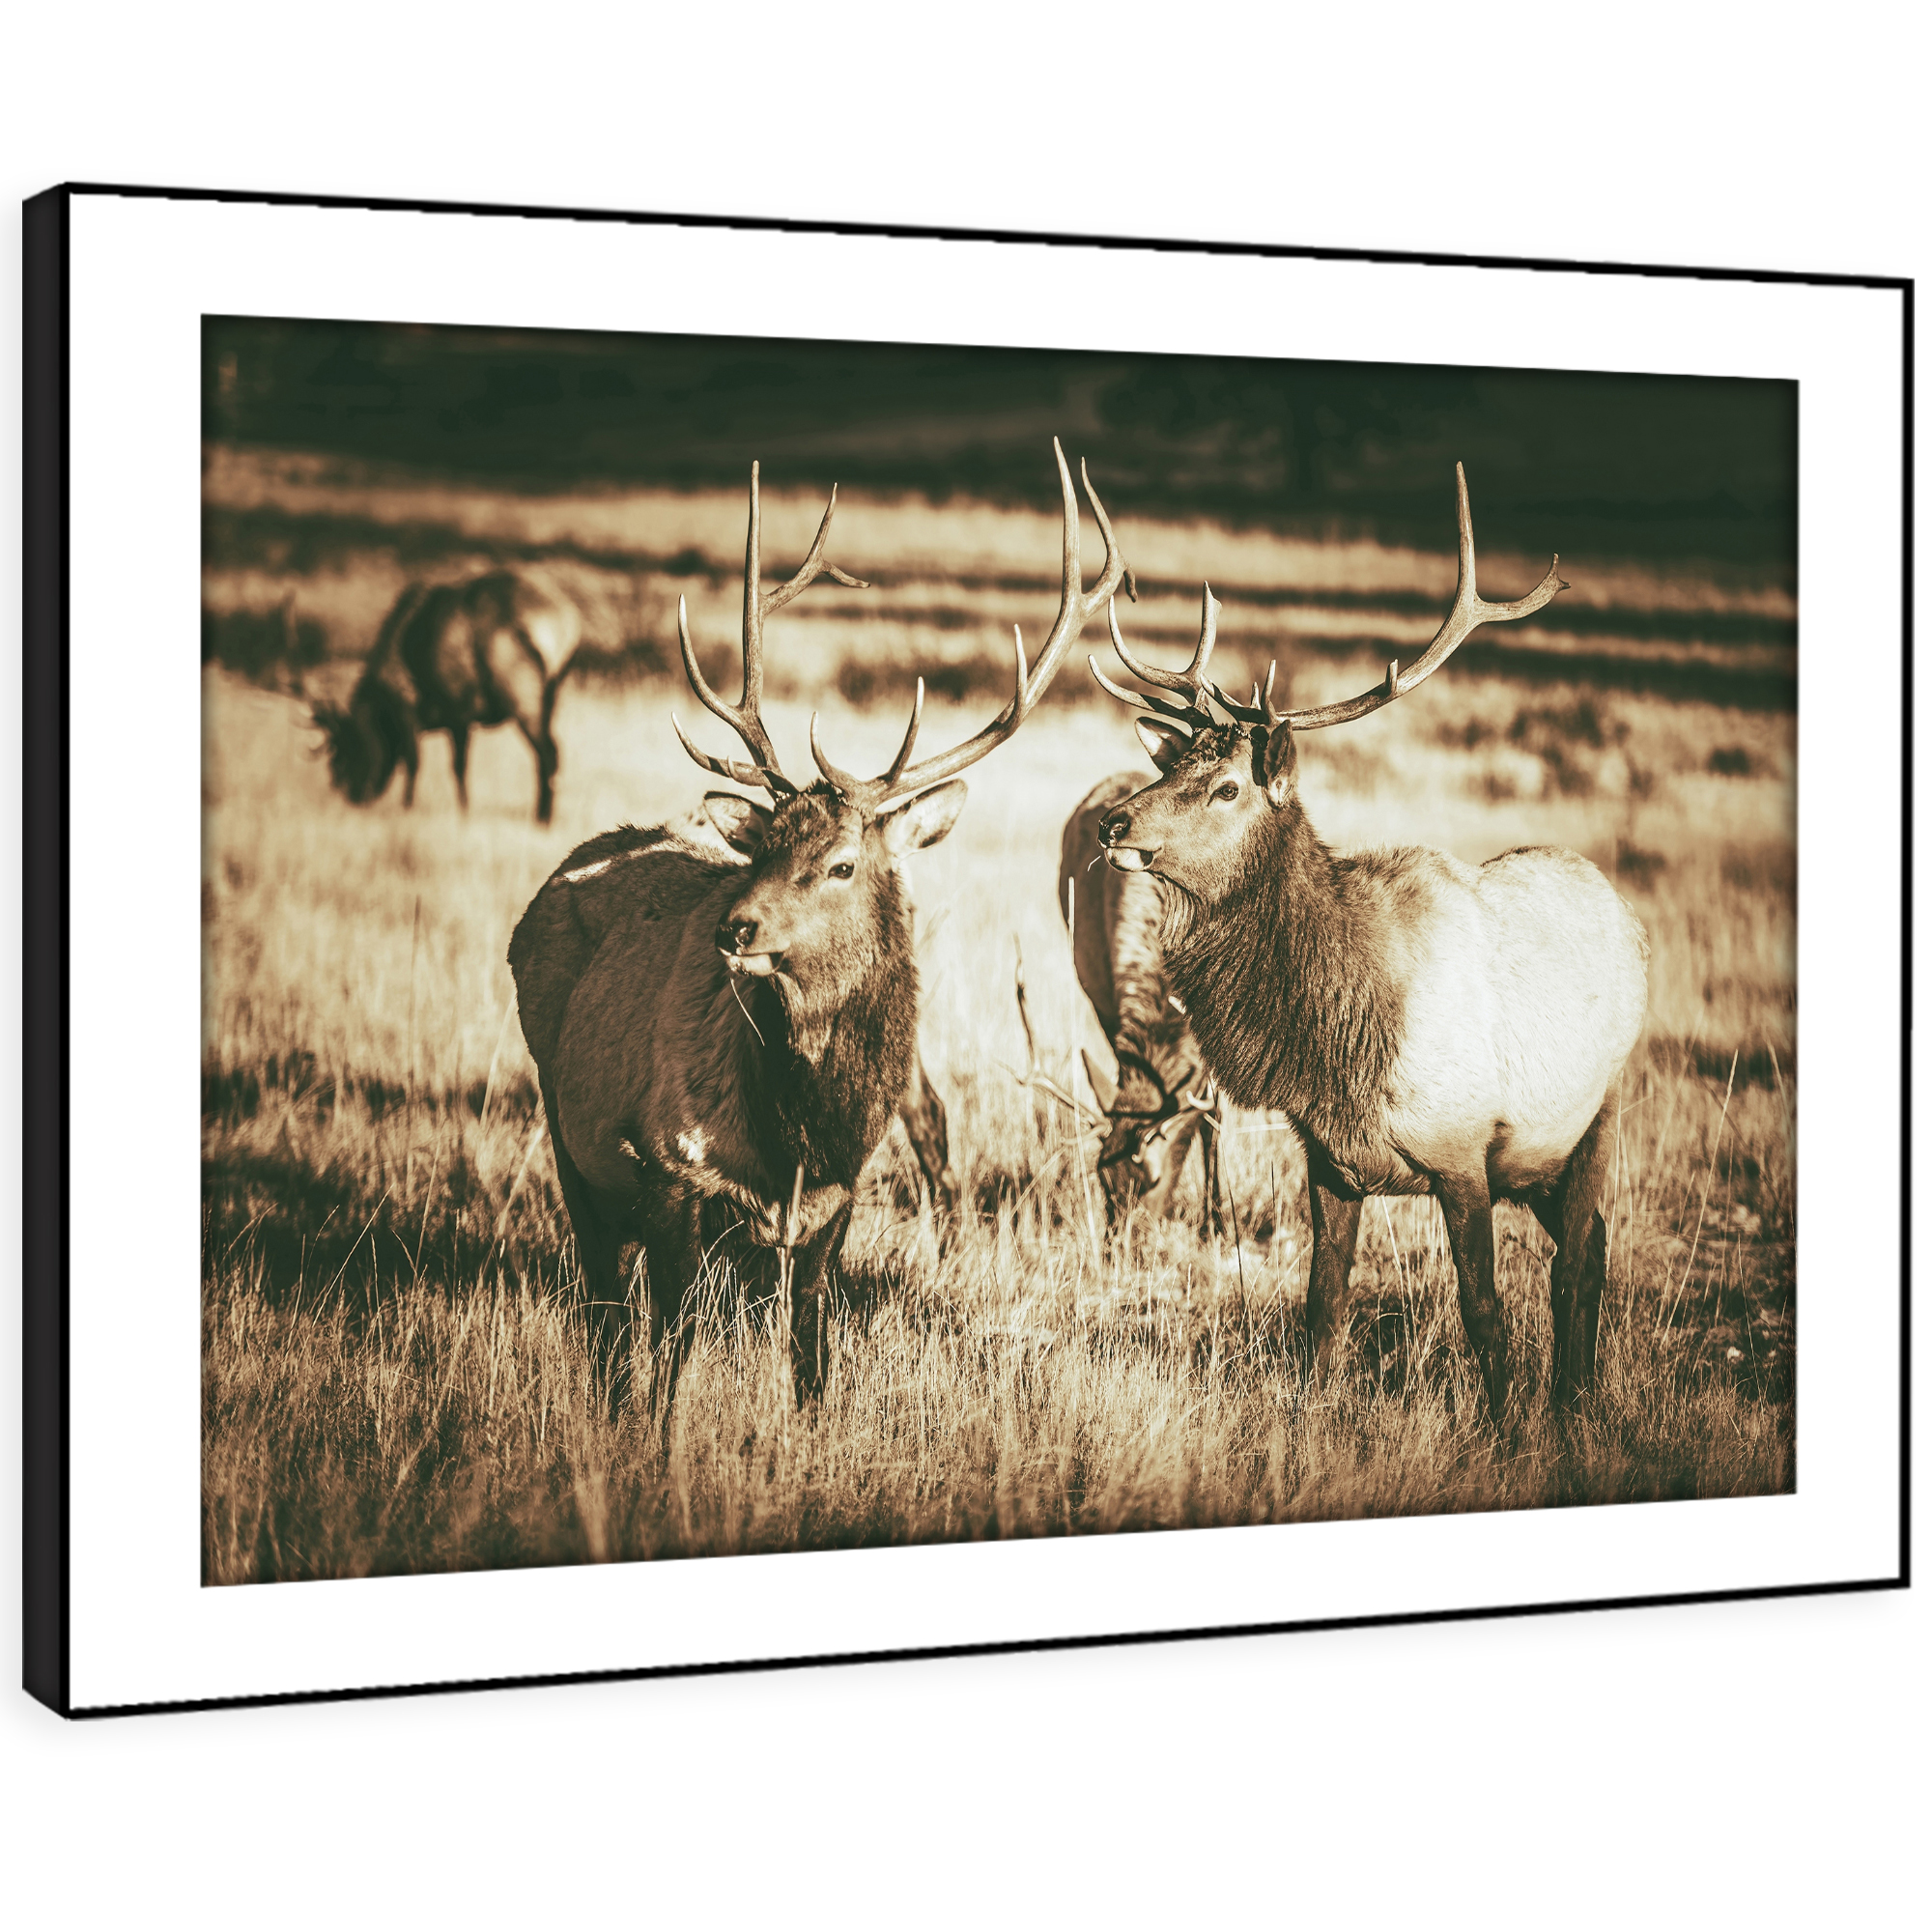 A592 Sepia Stag Herd braun  Funky Animal Framed Wall Art Large Picture Prints